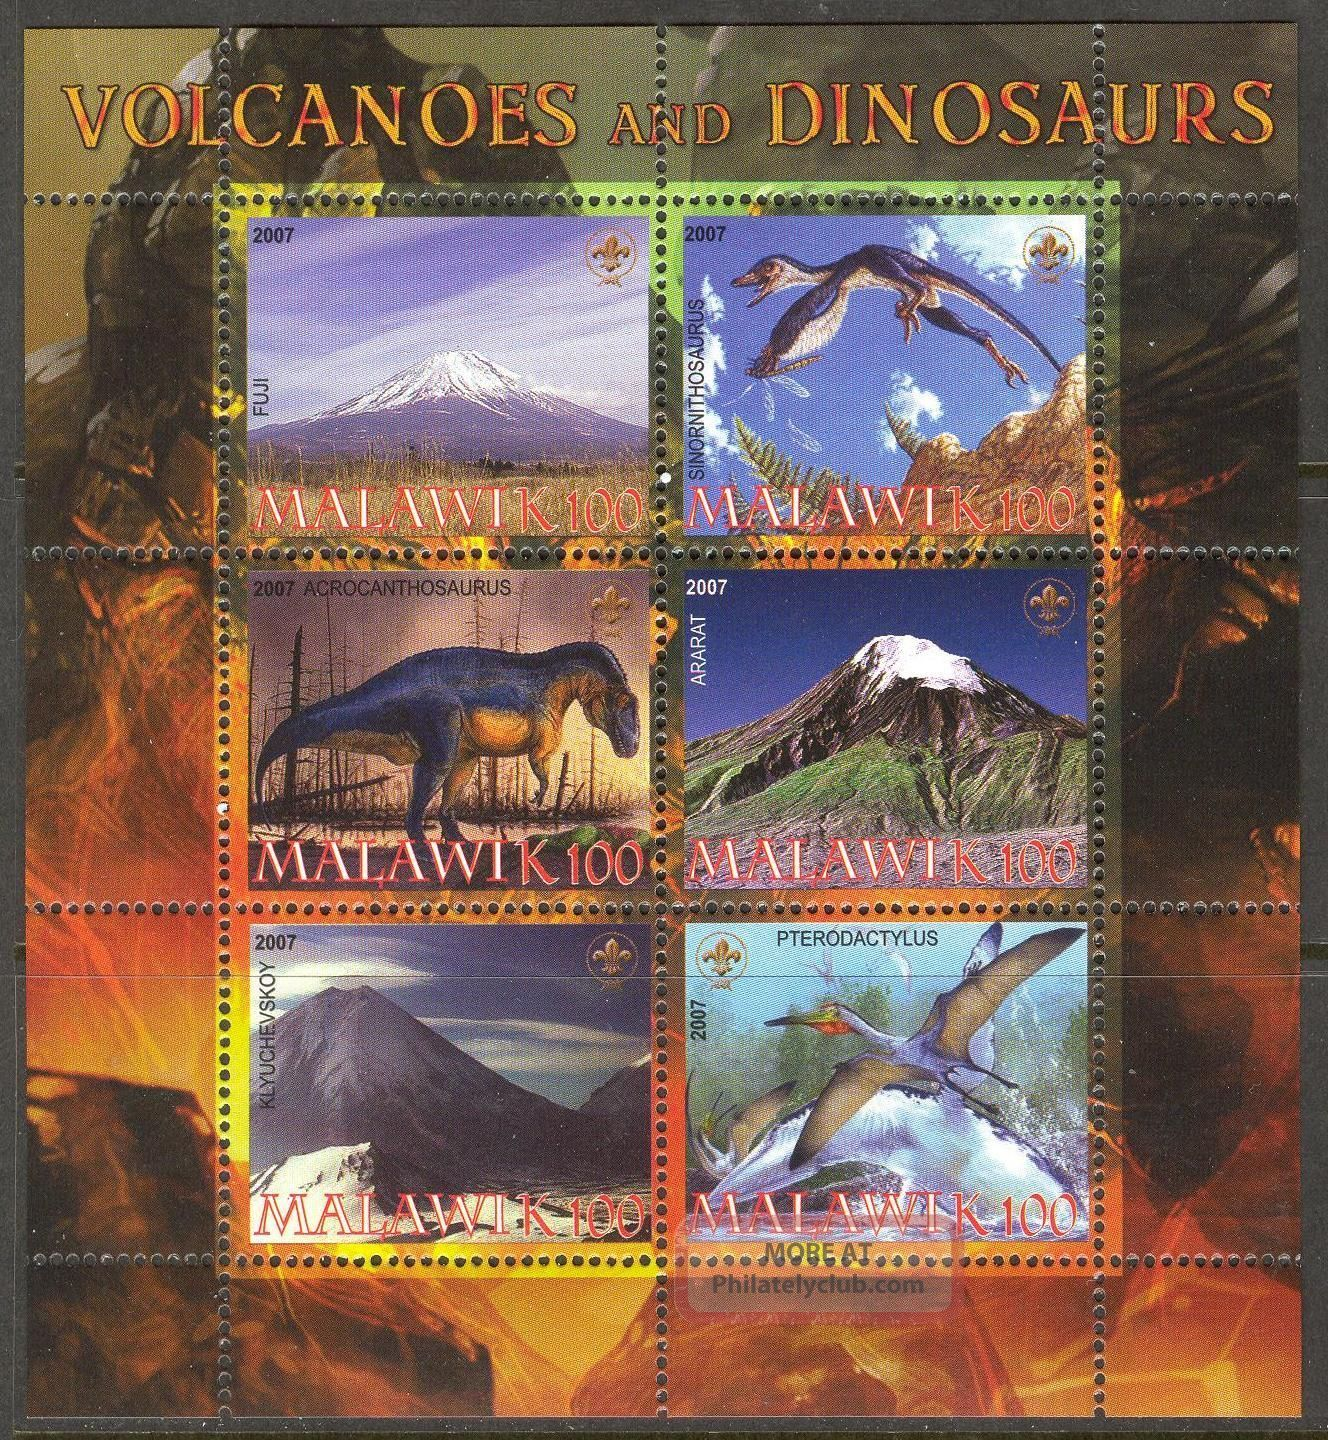 2007 Dinosaurs Famous Volcanoes Mountains Sheet Of 6 Specialty Philately photo